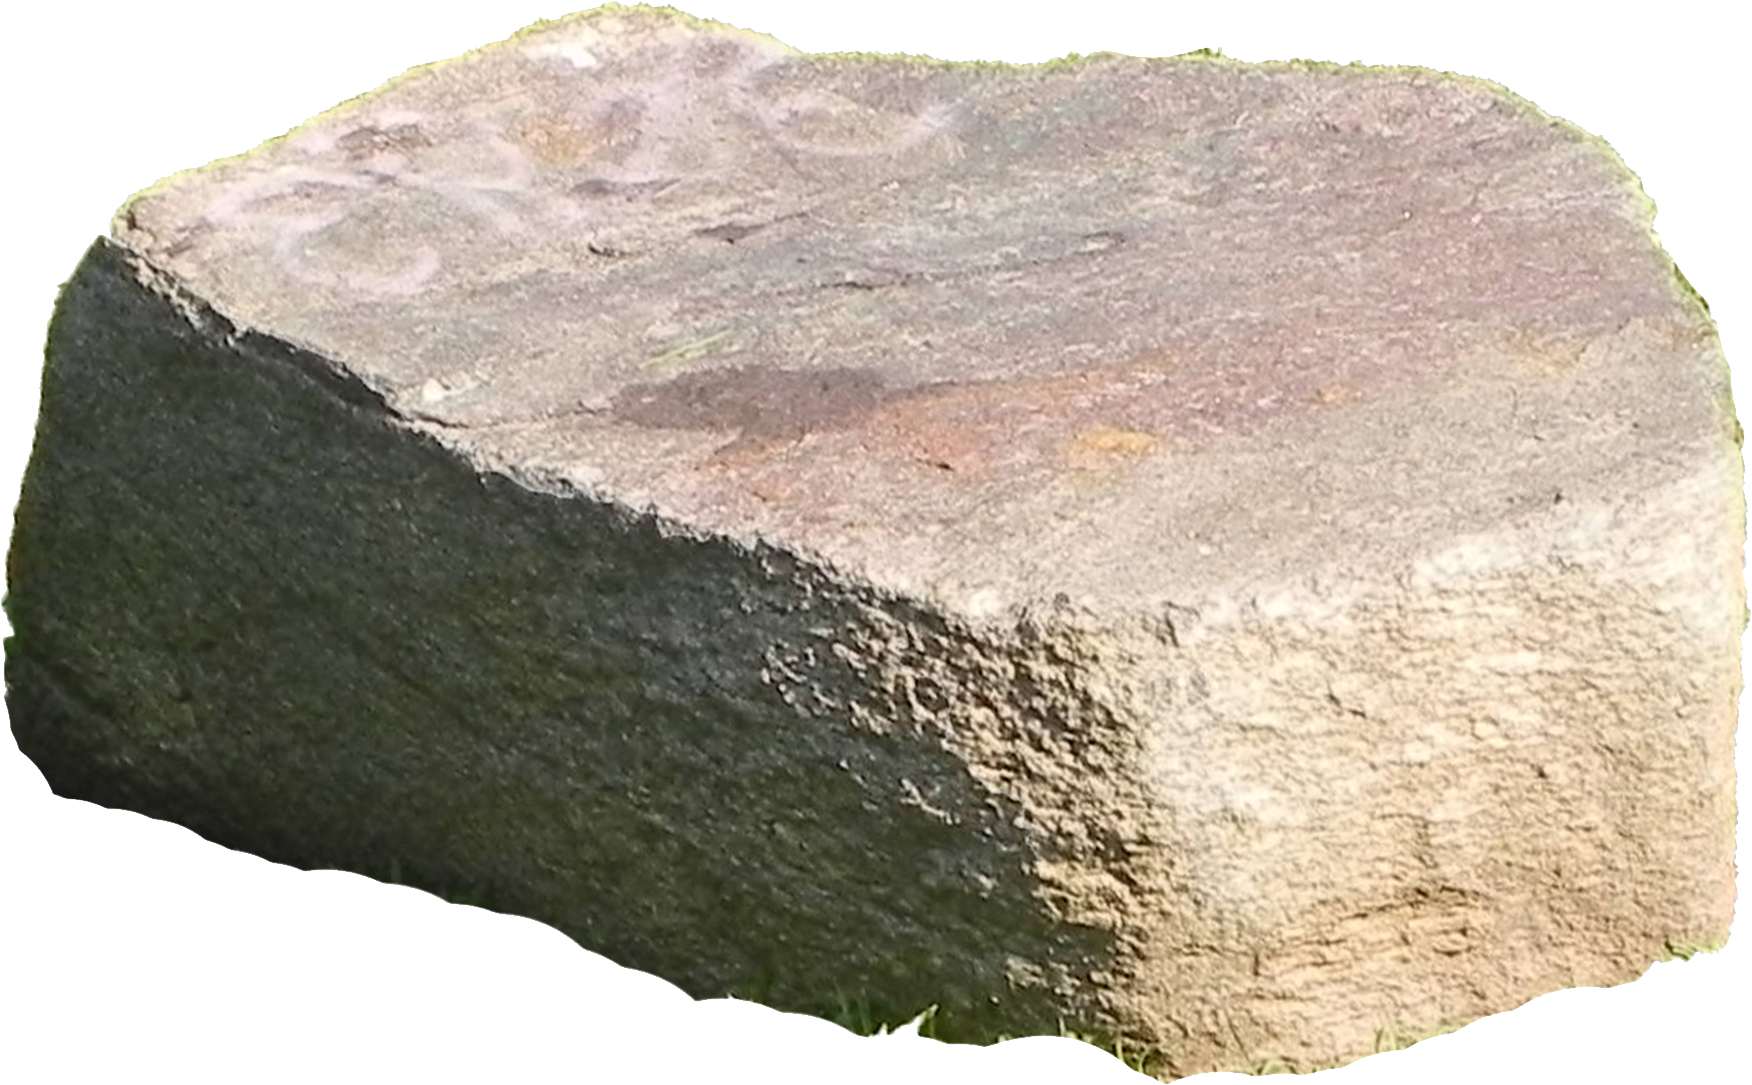 Stone png images rock. Transparent mineral banner stock